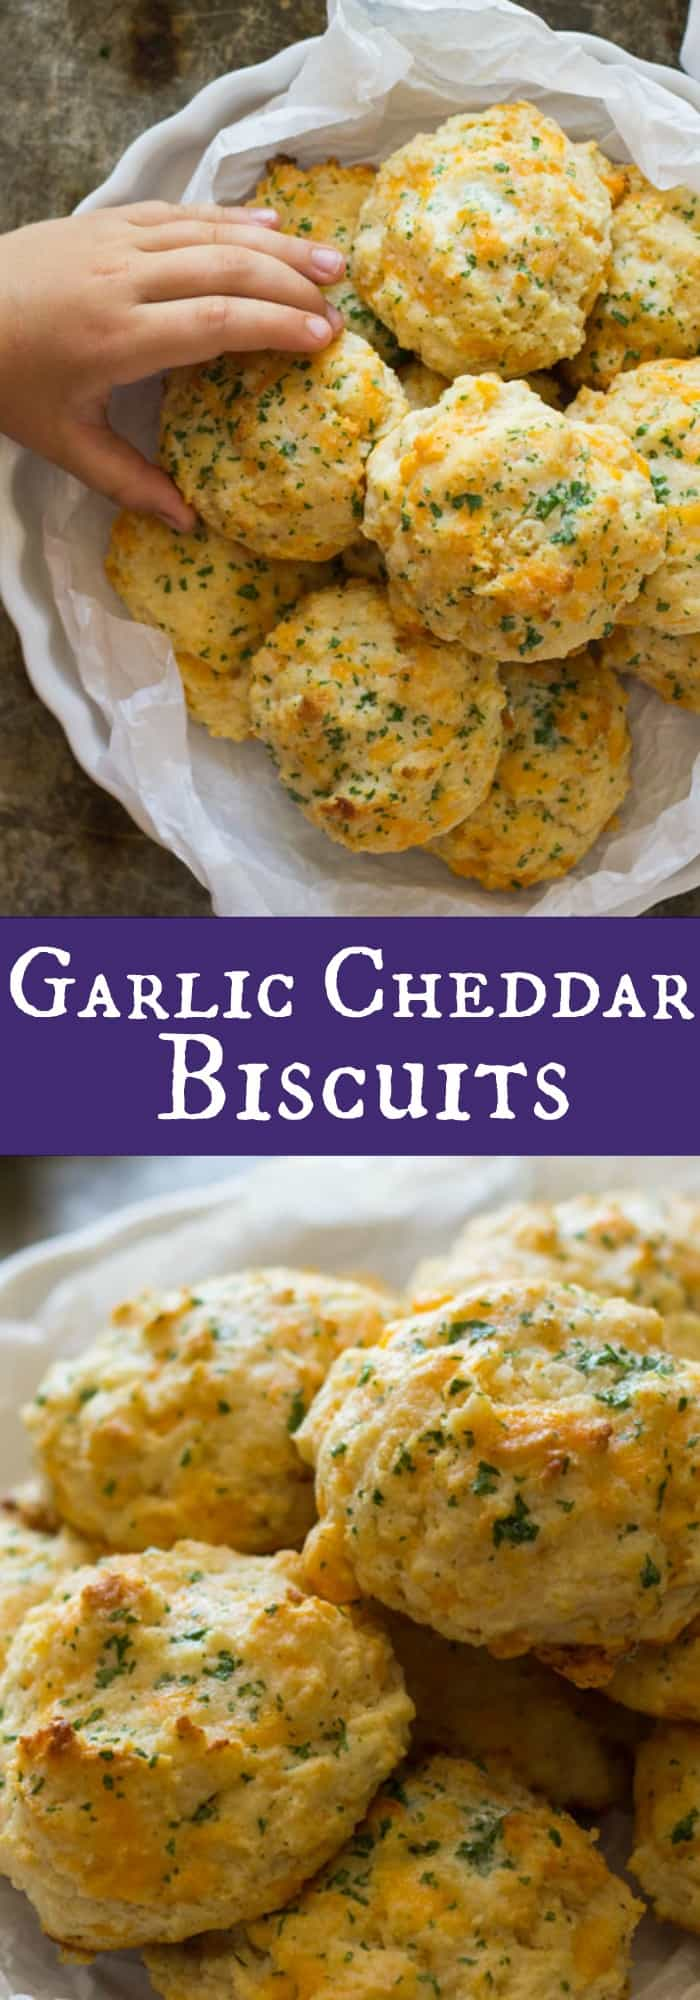 Garlic Cheddar Biscuits | Countryside Cravings